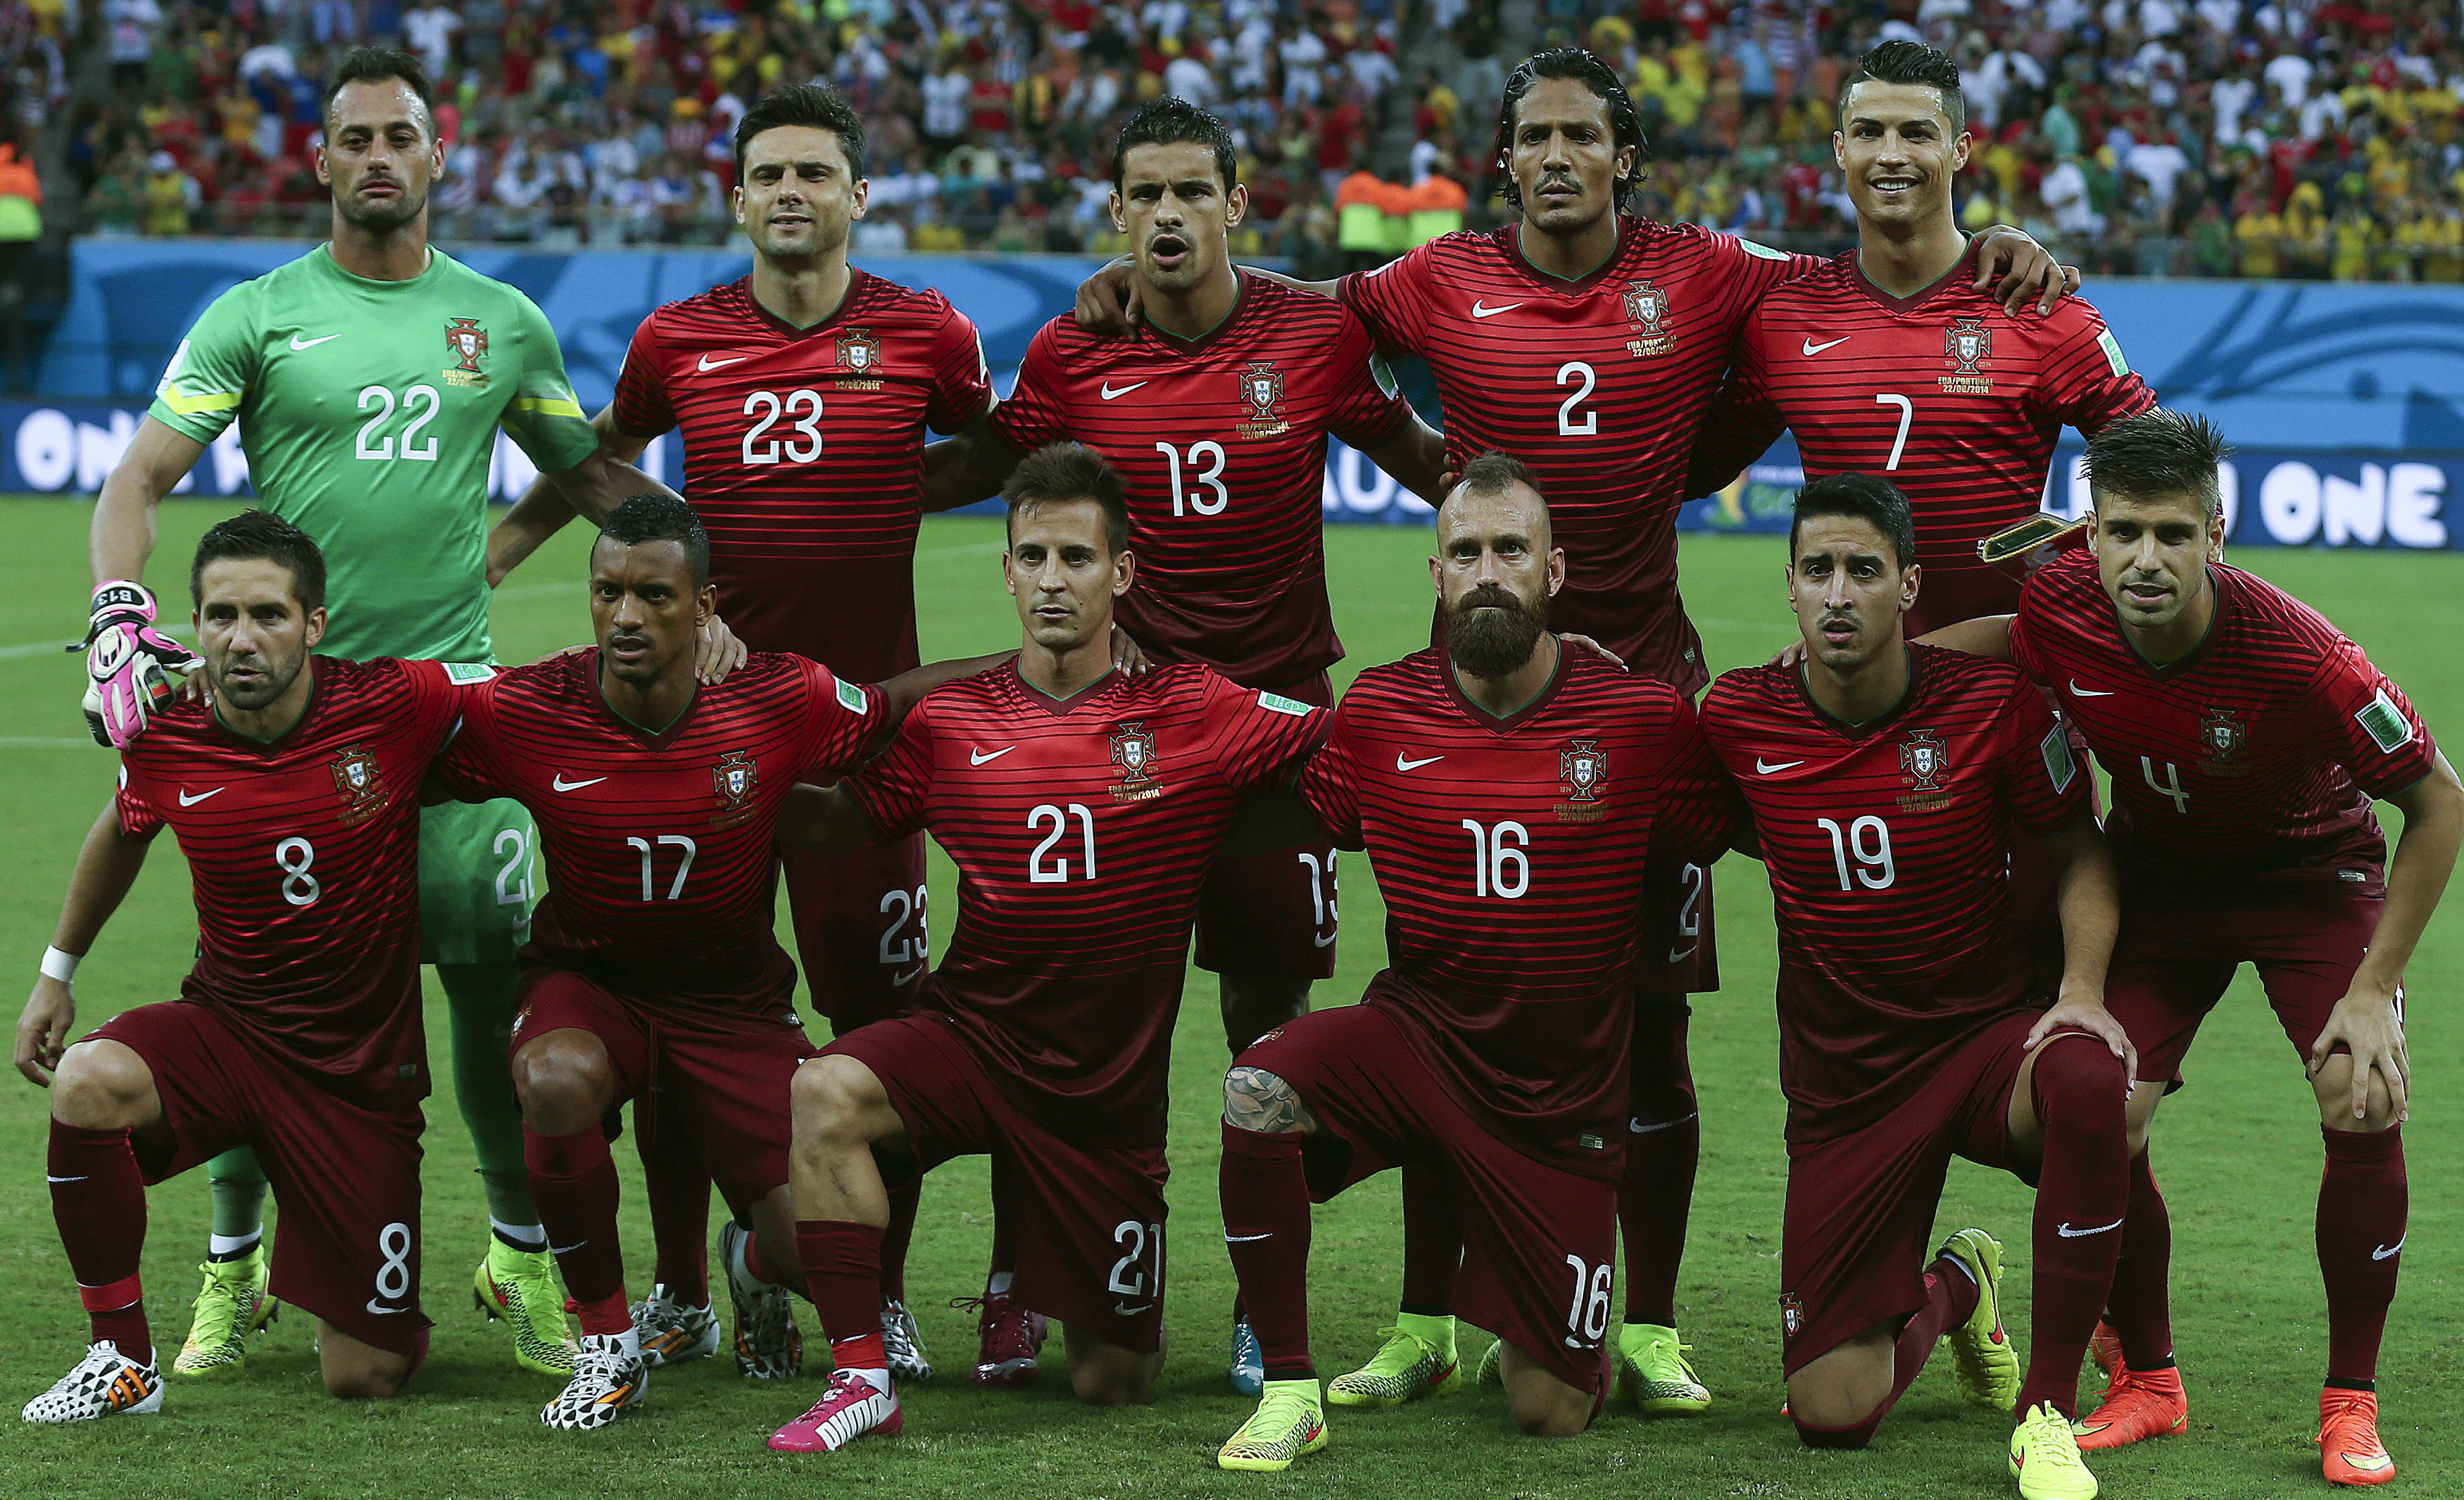 Soccer World Cup 2014: Portugal vs USA